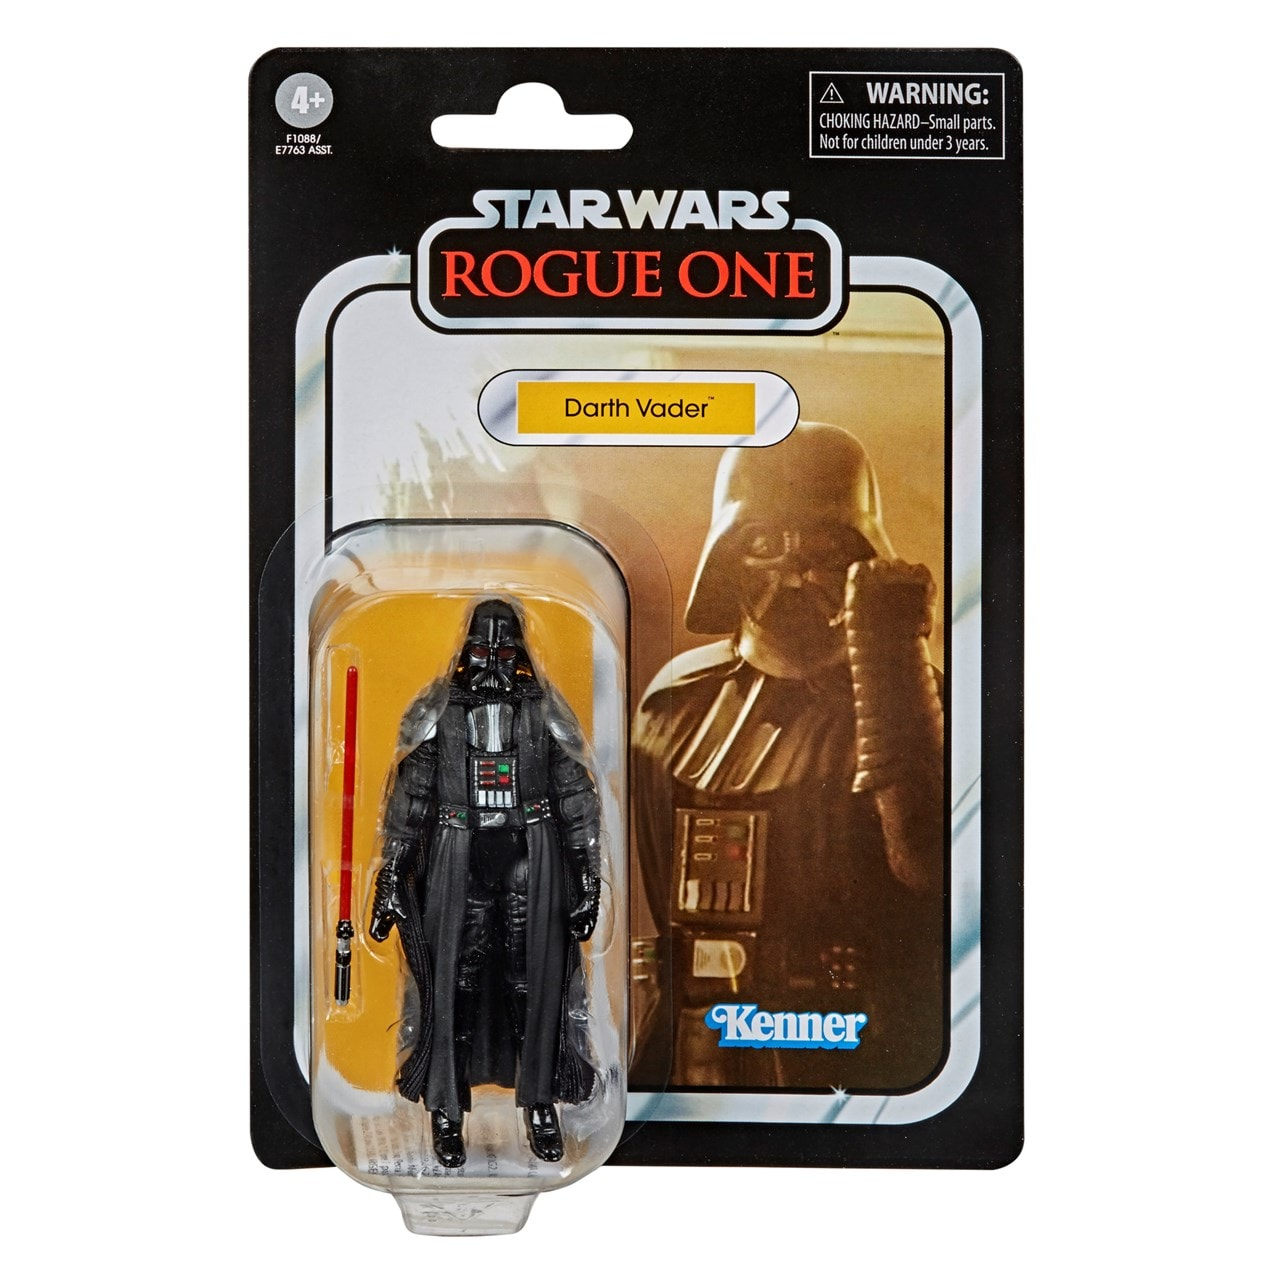 Darth Vader: Rogue One: Star Wars: Vintage Collection Action Figure - 6